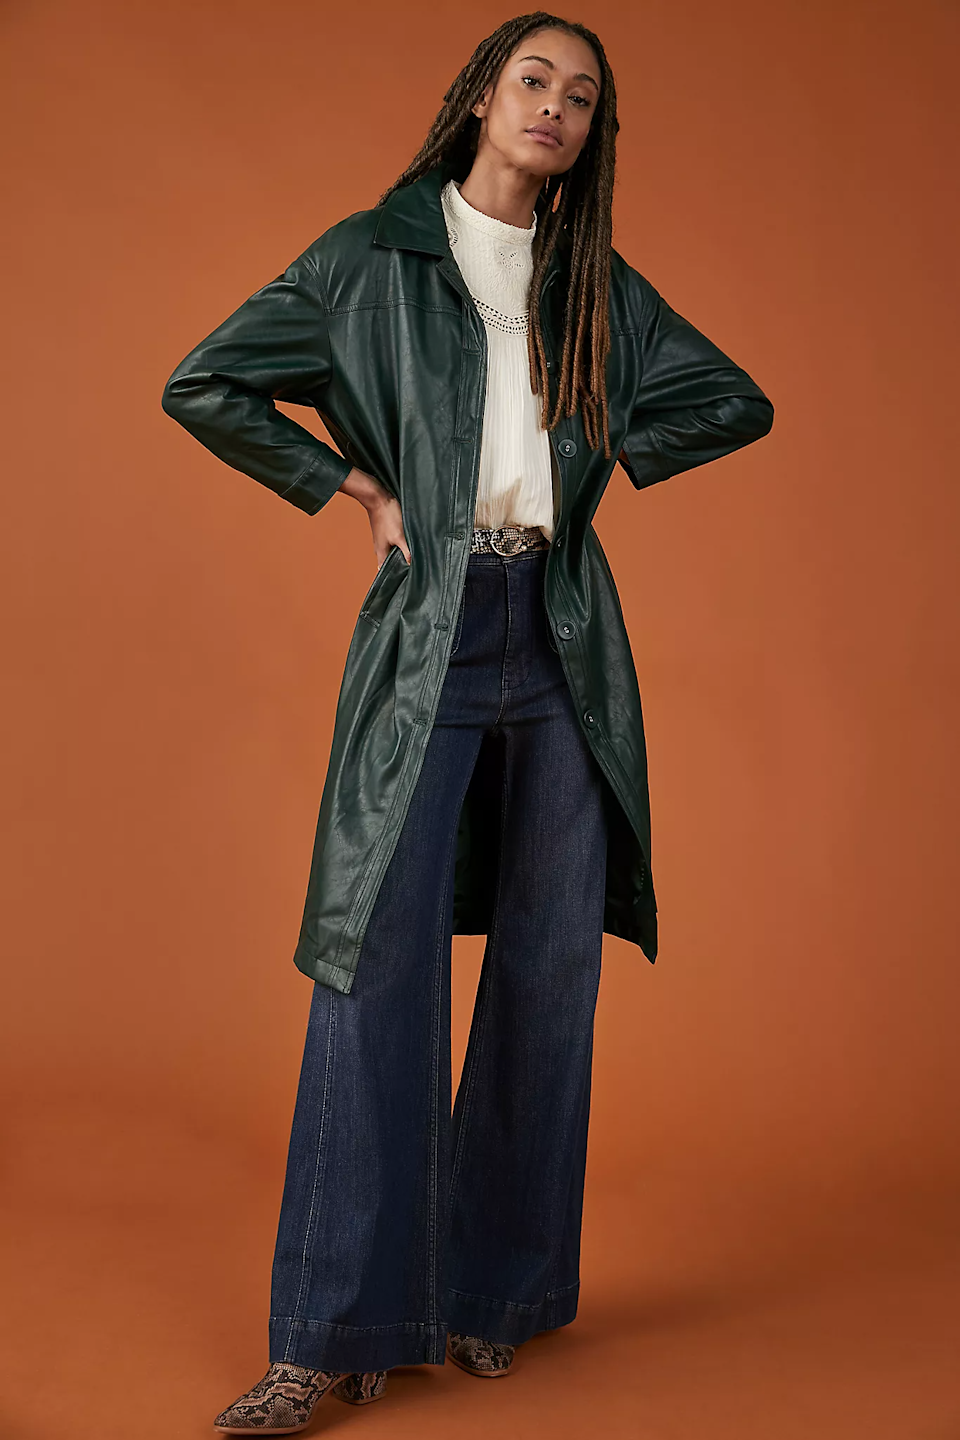 """<br><br><strong>En Saison</strong> Deirdre Faux Leather Trench Coat, $, available at <a href=""""https://go.skimresources.com/?id=30283X879131&url=https%3A%2F%2Fwww.anthropologie.com%2Fshop%2Fdeirdre-faux-leather-trench-coat"""" rel=""""nofollow noopener"""" target=""""_blank"""" data-ylk=""""slk:Anthropologie"""" class=""""link rapid-noclick-resp"""">Anthropologie</a>"""